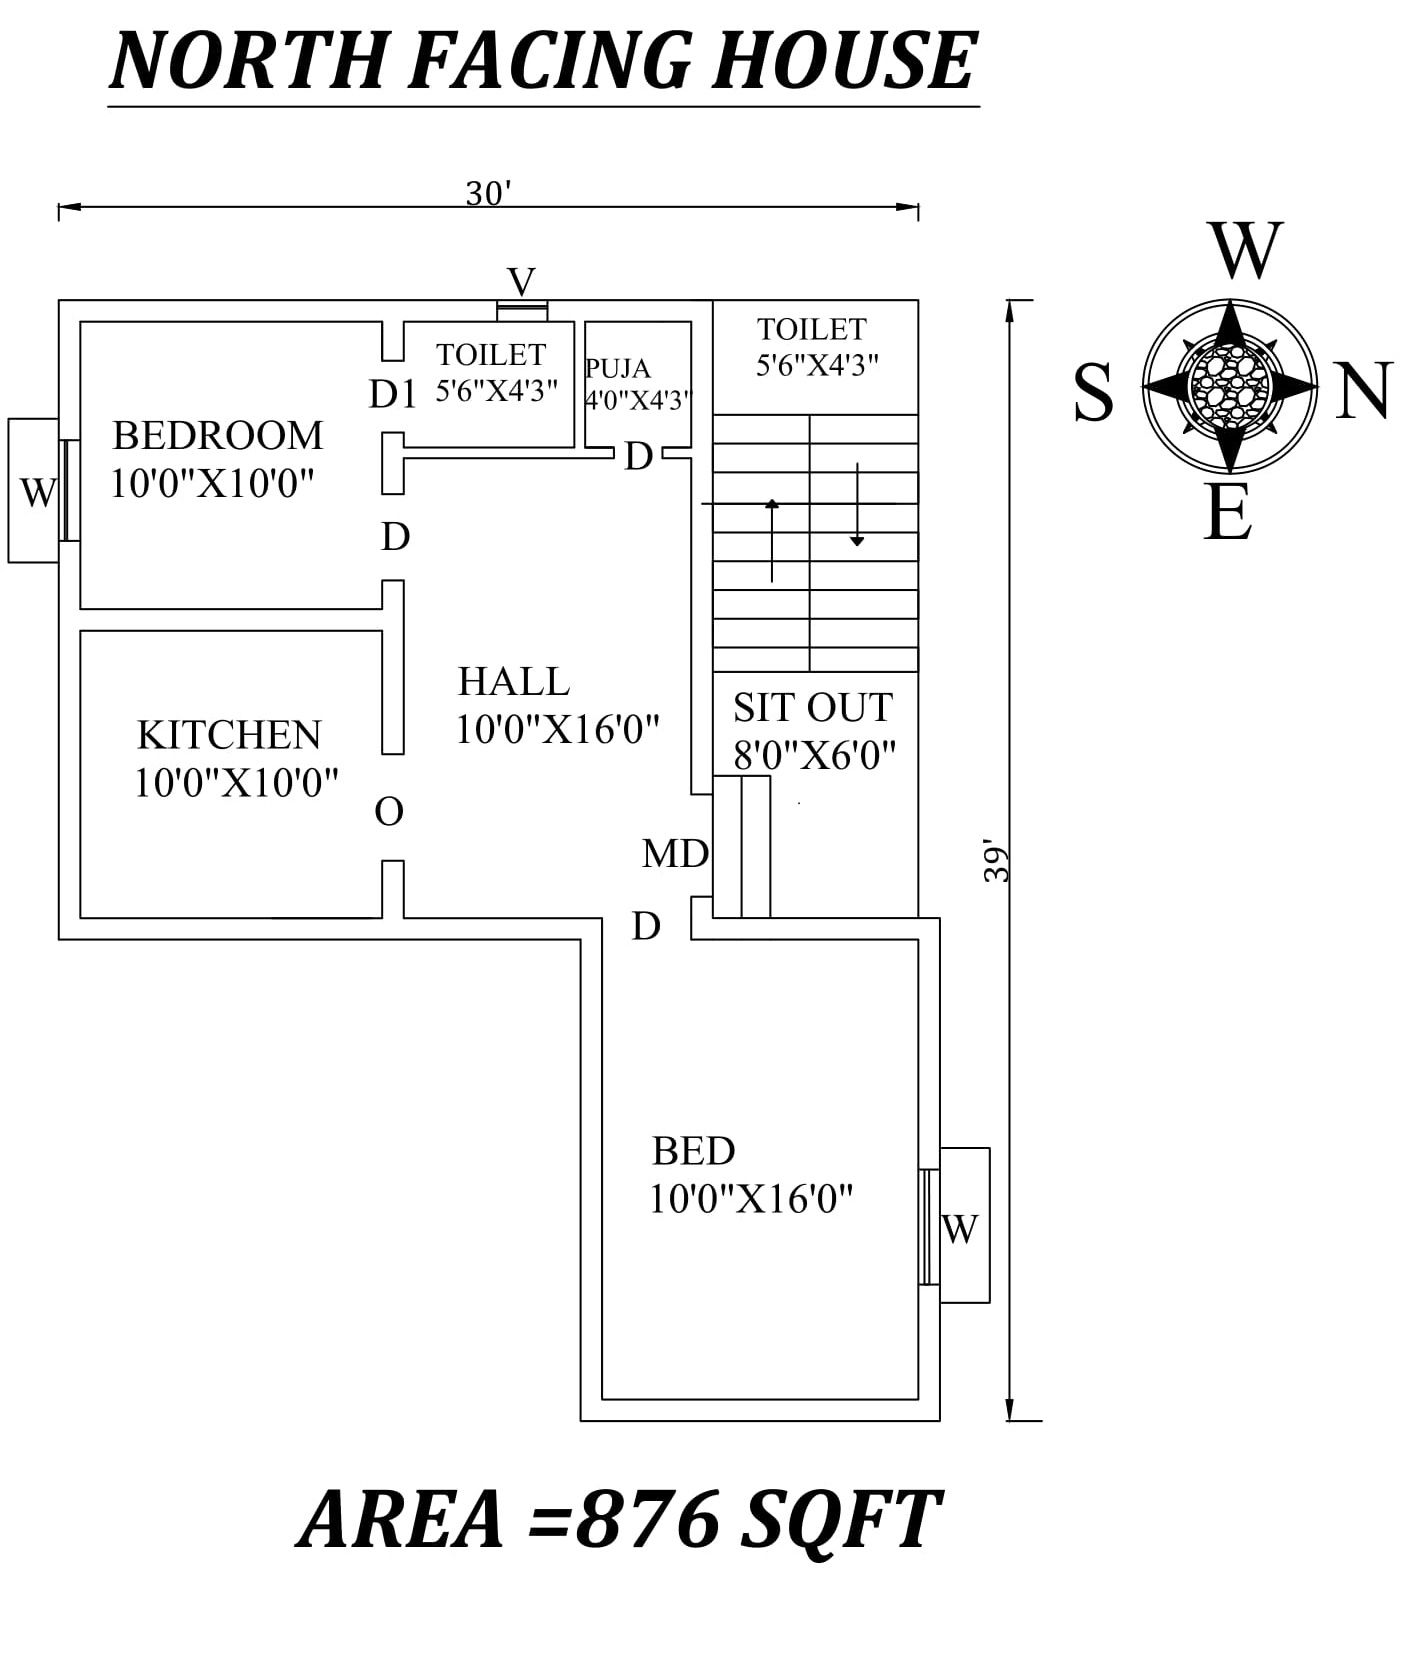 30 X39 Amazing North Facing 2bhk House Plan As Per Vastu Shastra Autocad Dwg And Pdf File Details 2bhk House Plan Little House Plans House Plans